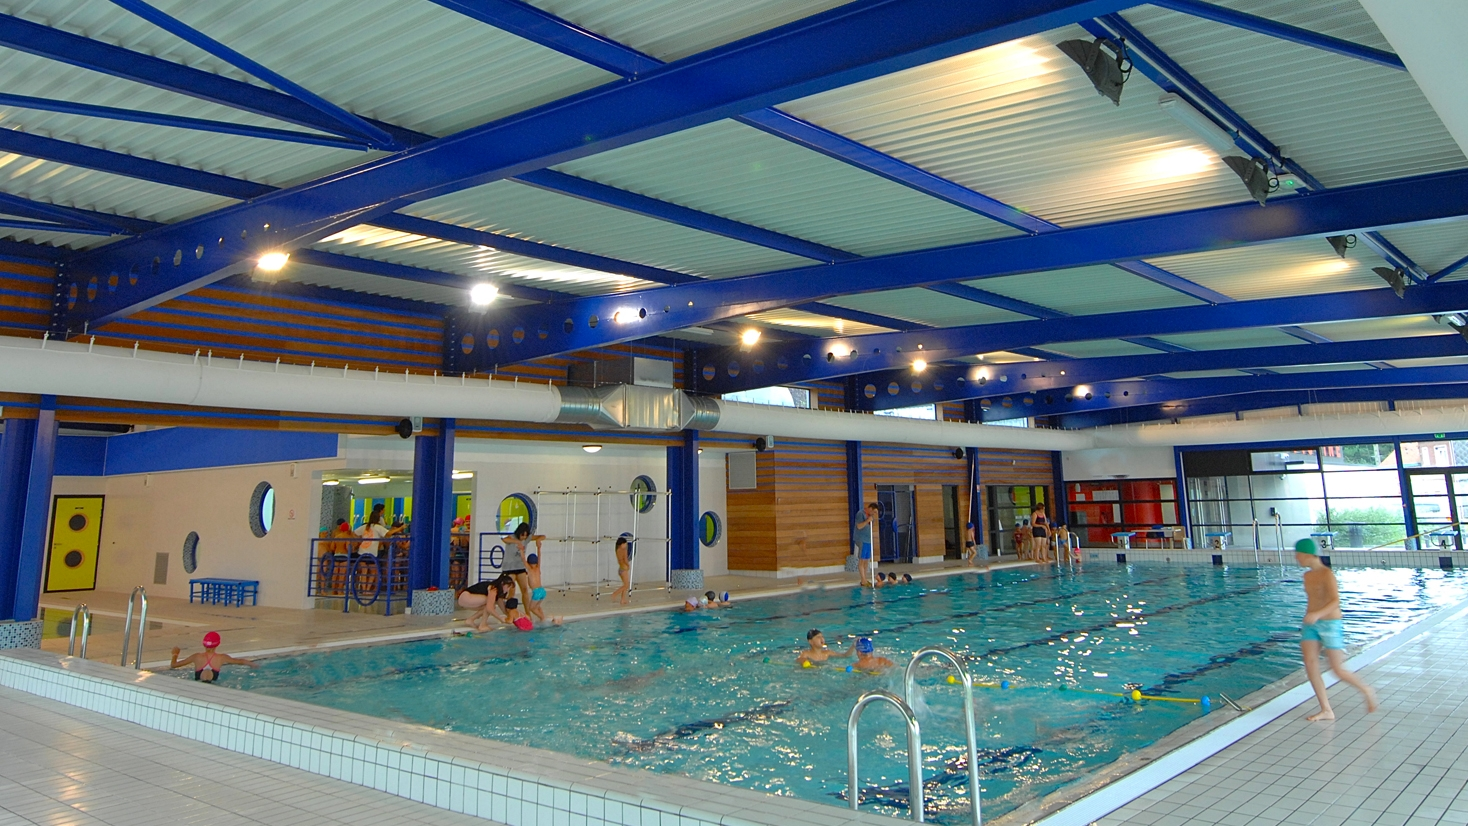 piscine maurice thorez escaudain 59 eau air syst me